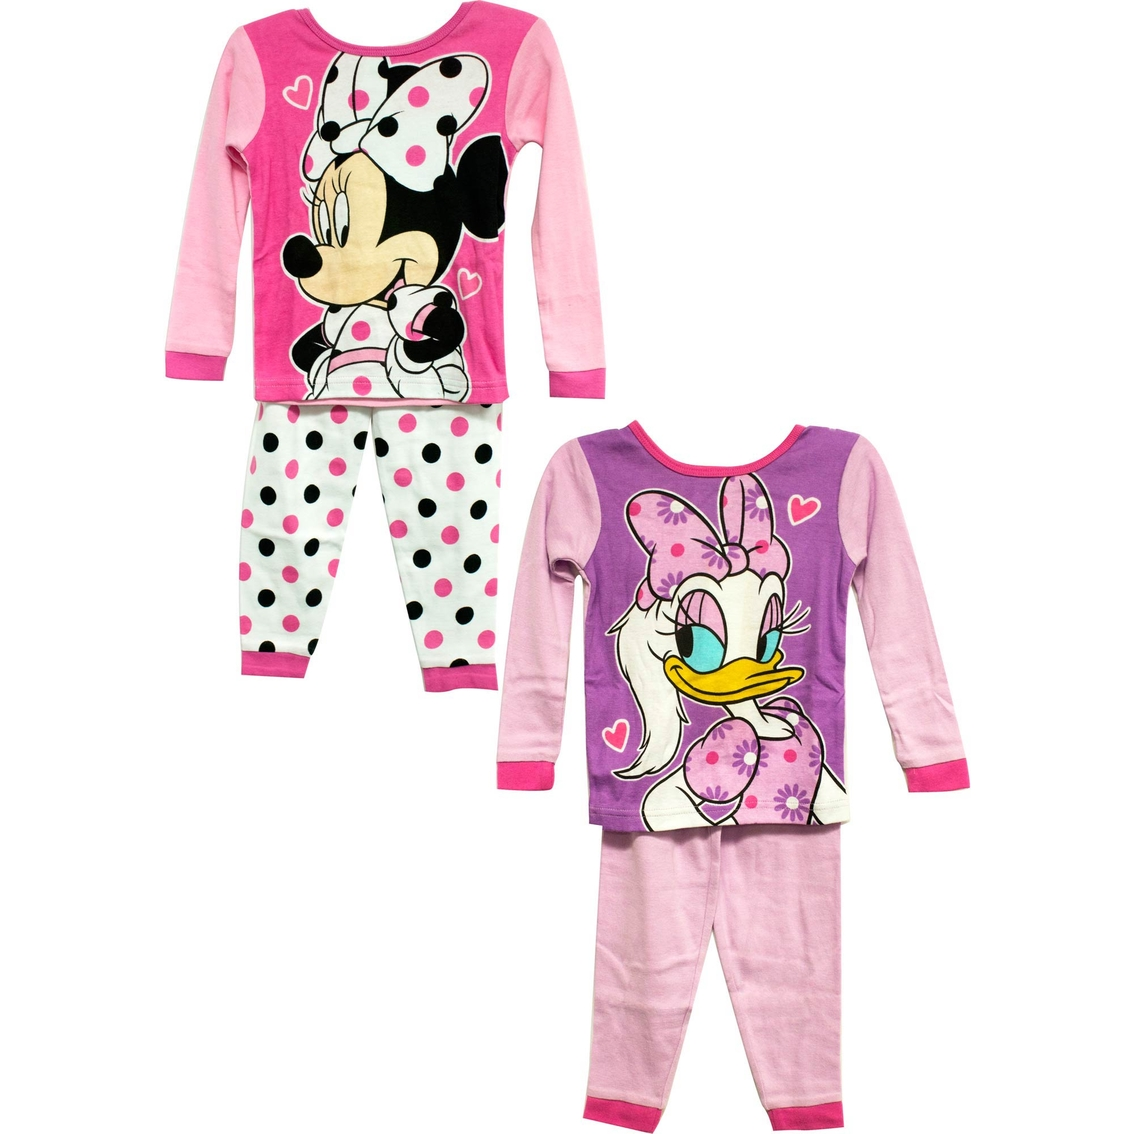 8f80c903b Disney Toddler Girls 4 Pc. Minnie Daisy Pajama Set